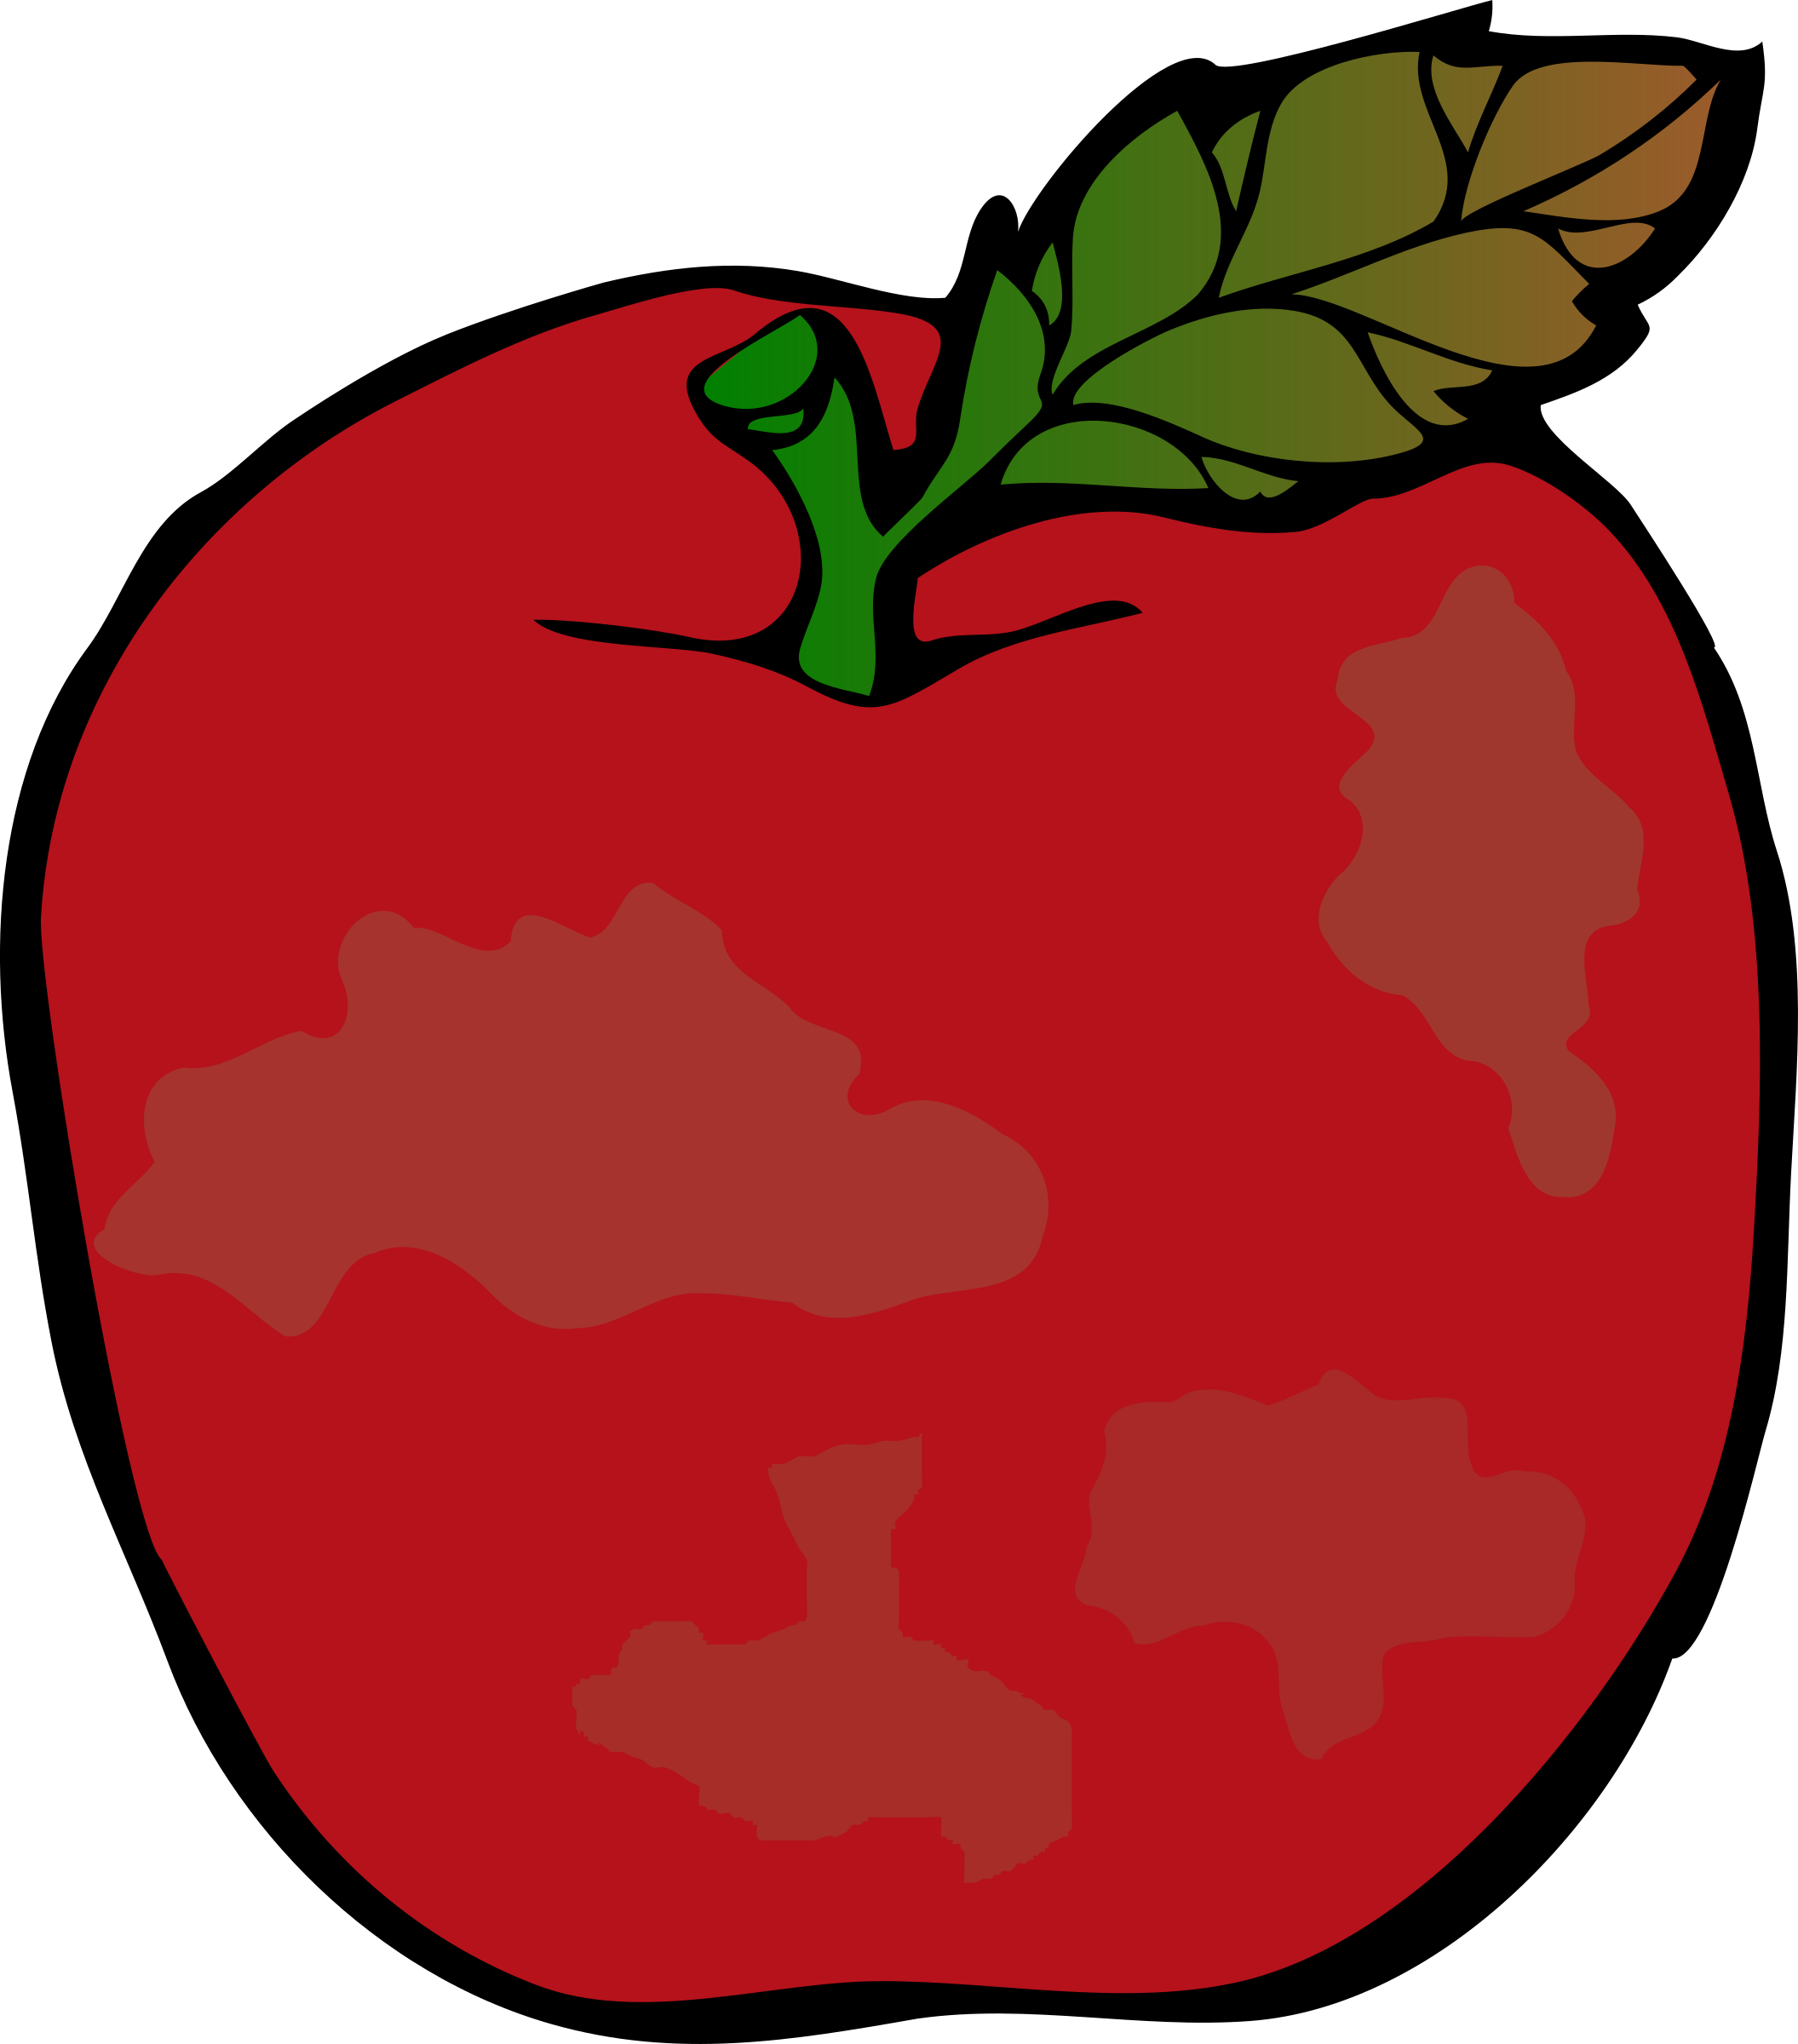 Apple core clipart free image royalty free stock Clipart - Rotten Apple image royalty free stock